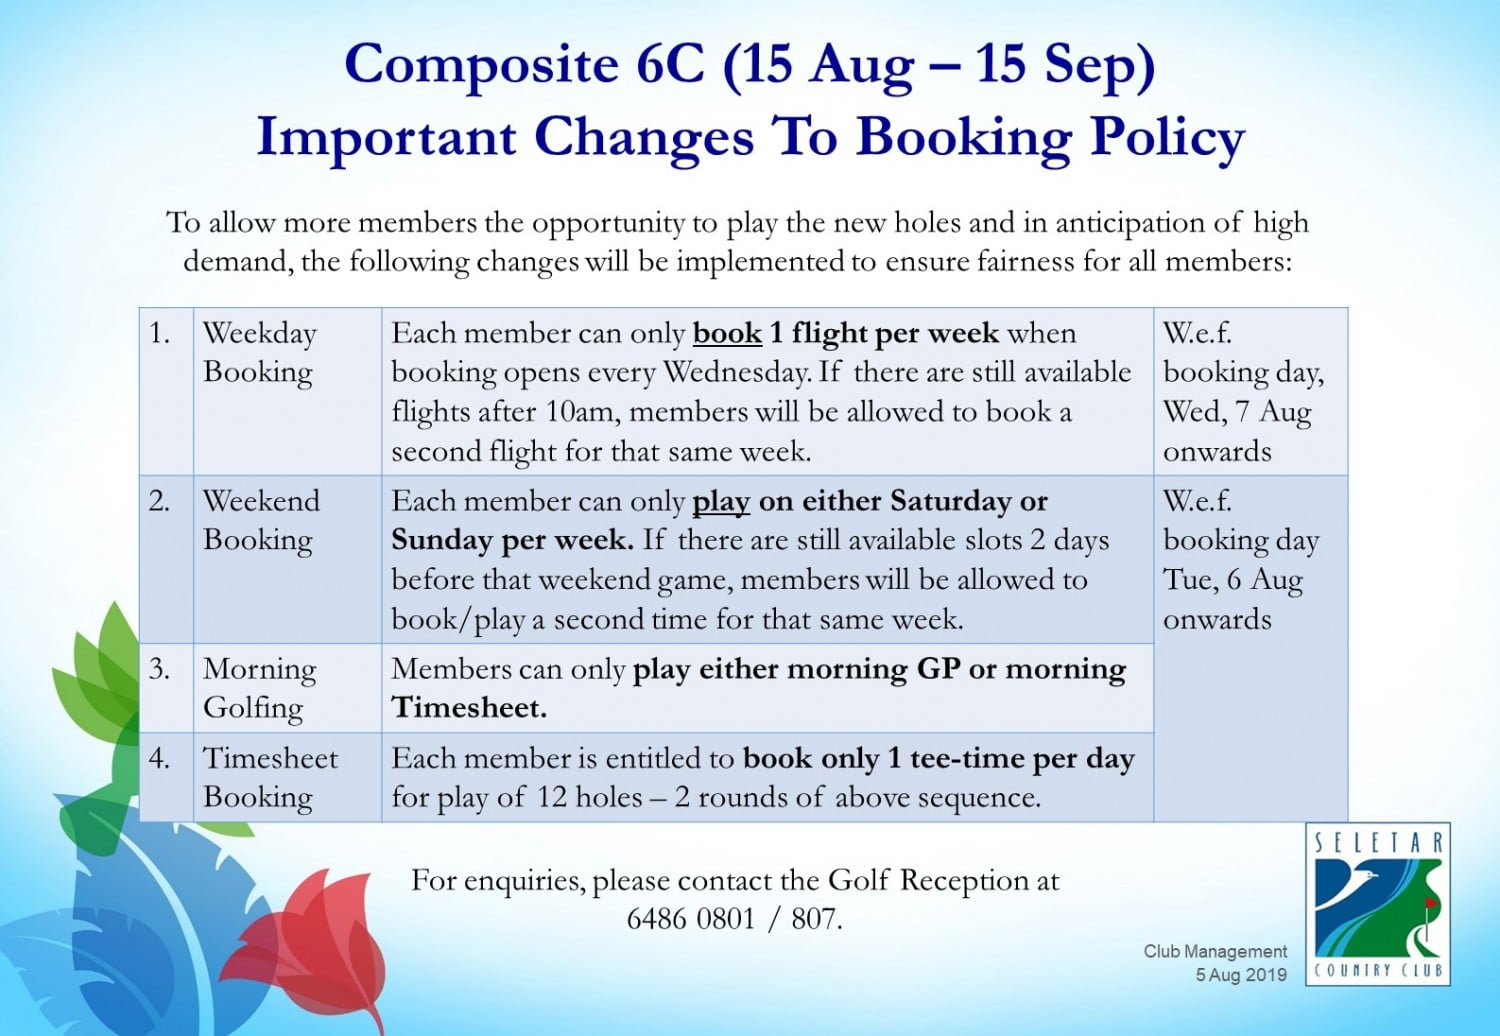 Composite 6C Changes to Booking Policy